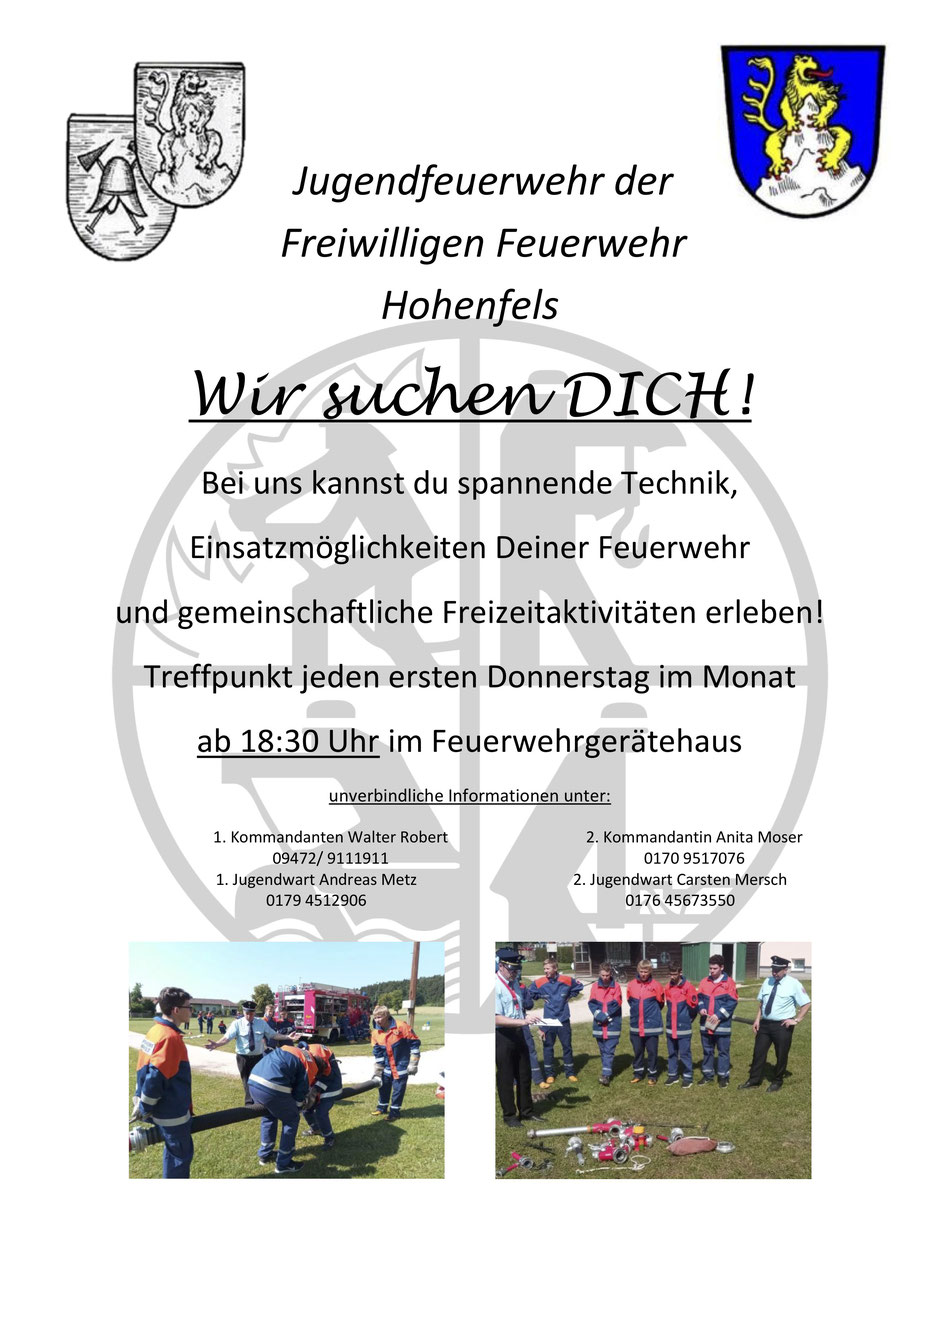 FFW Hohenfels sucht dich